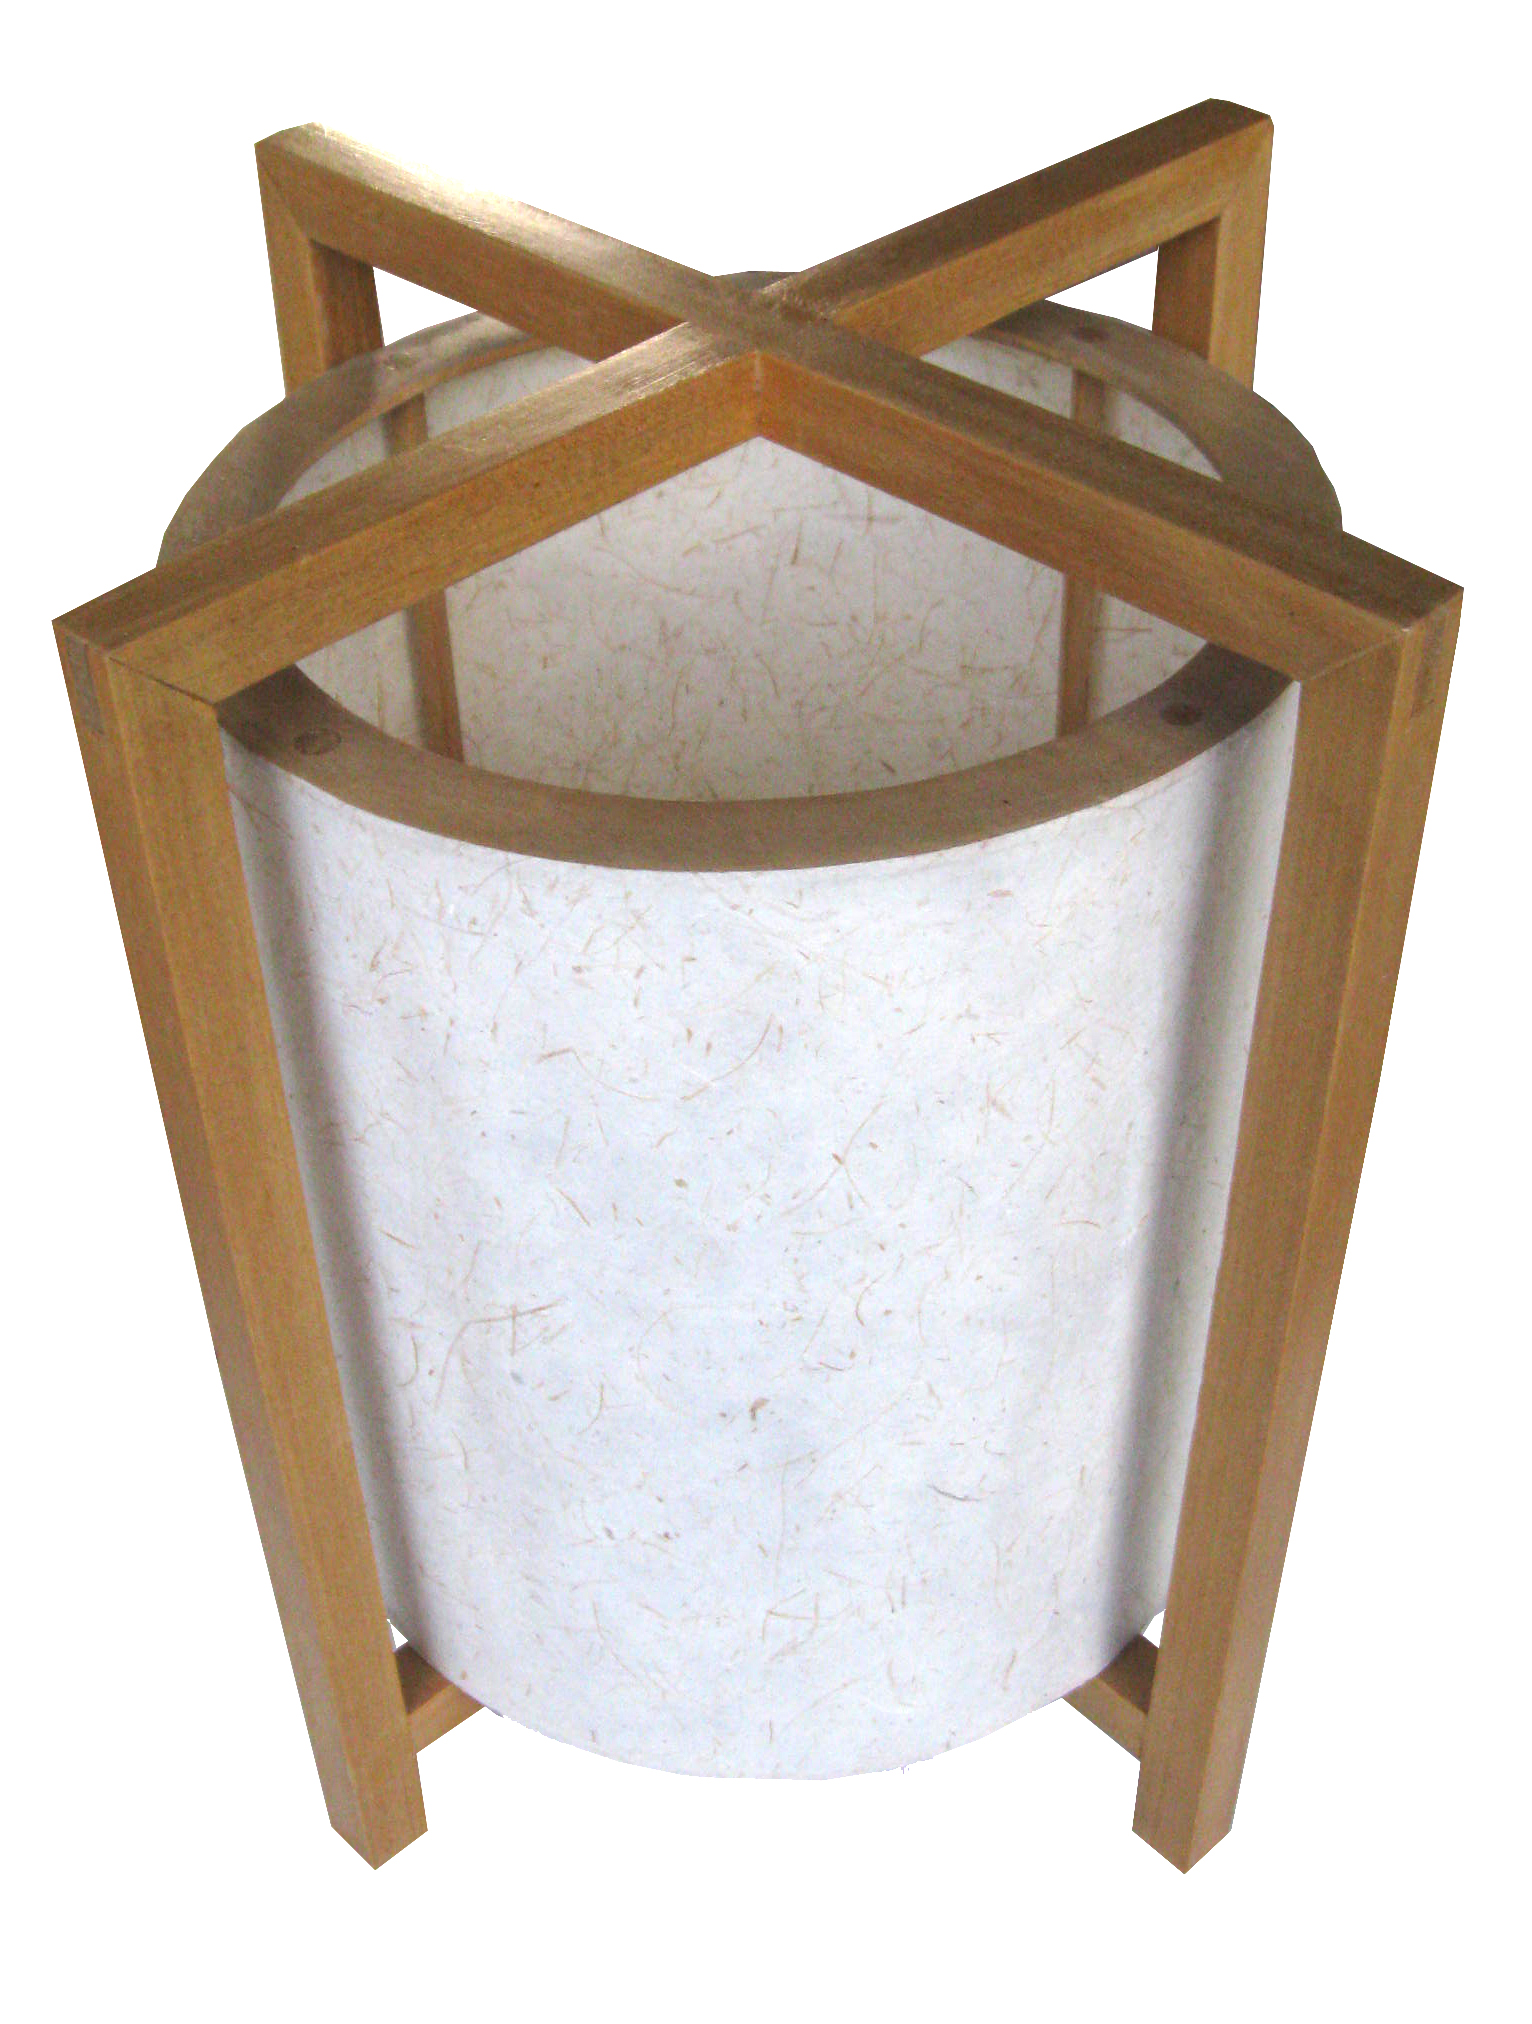 Lamp Cross Isometric.jpg